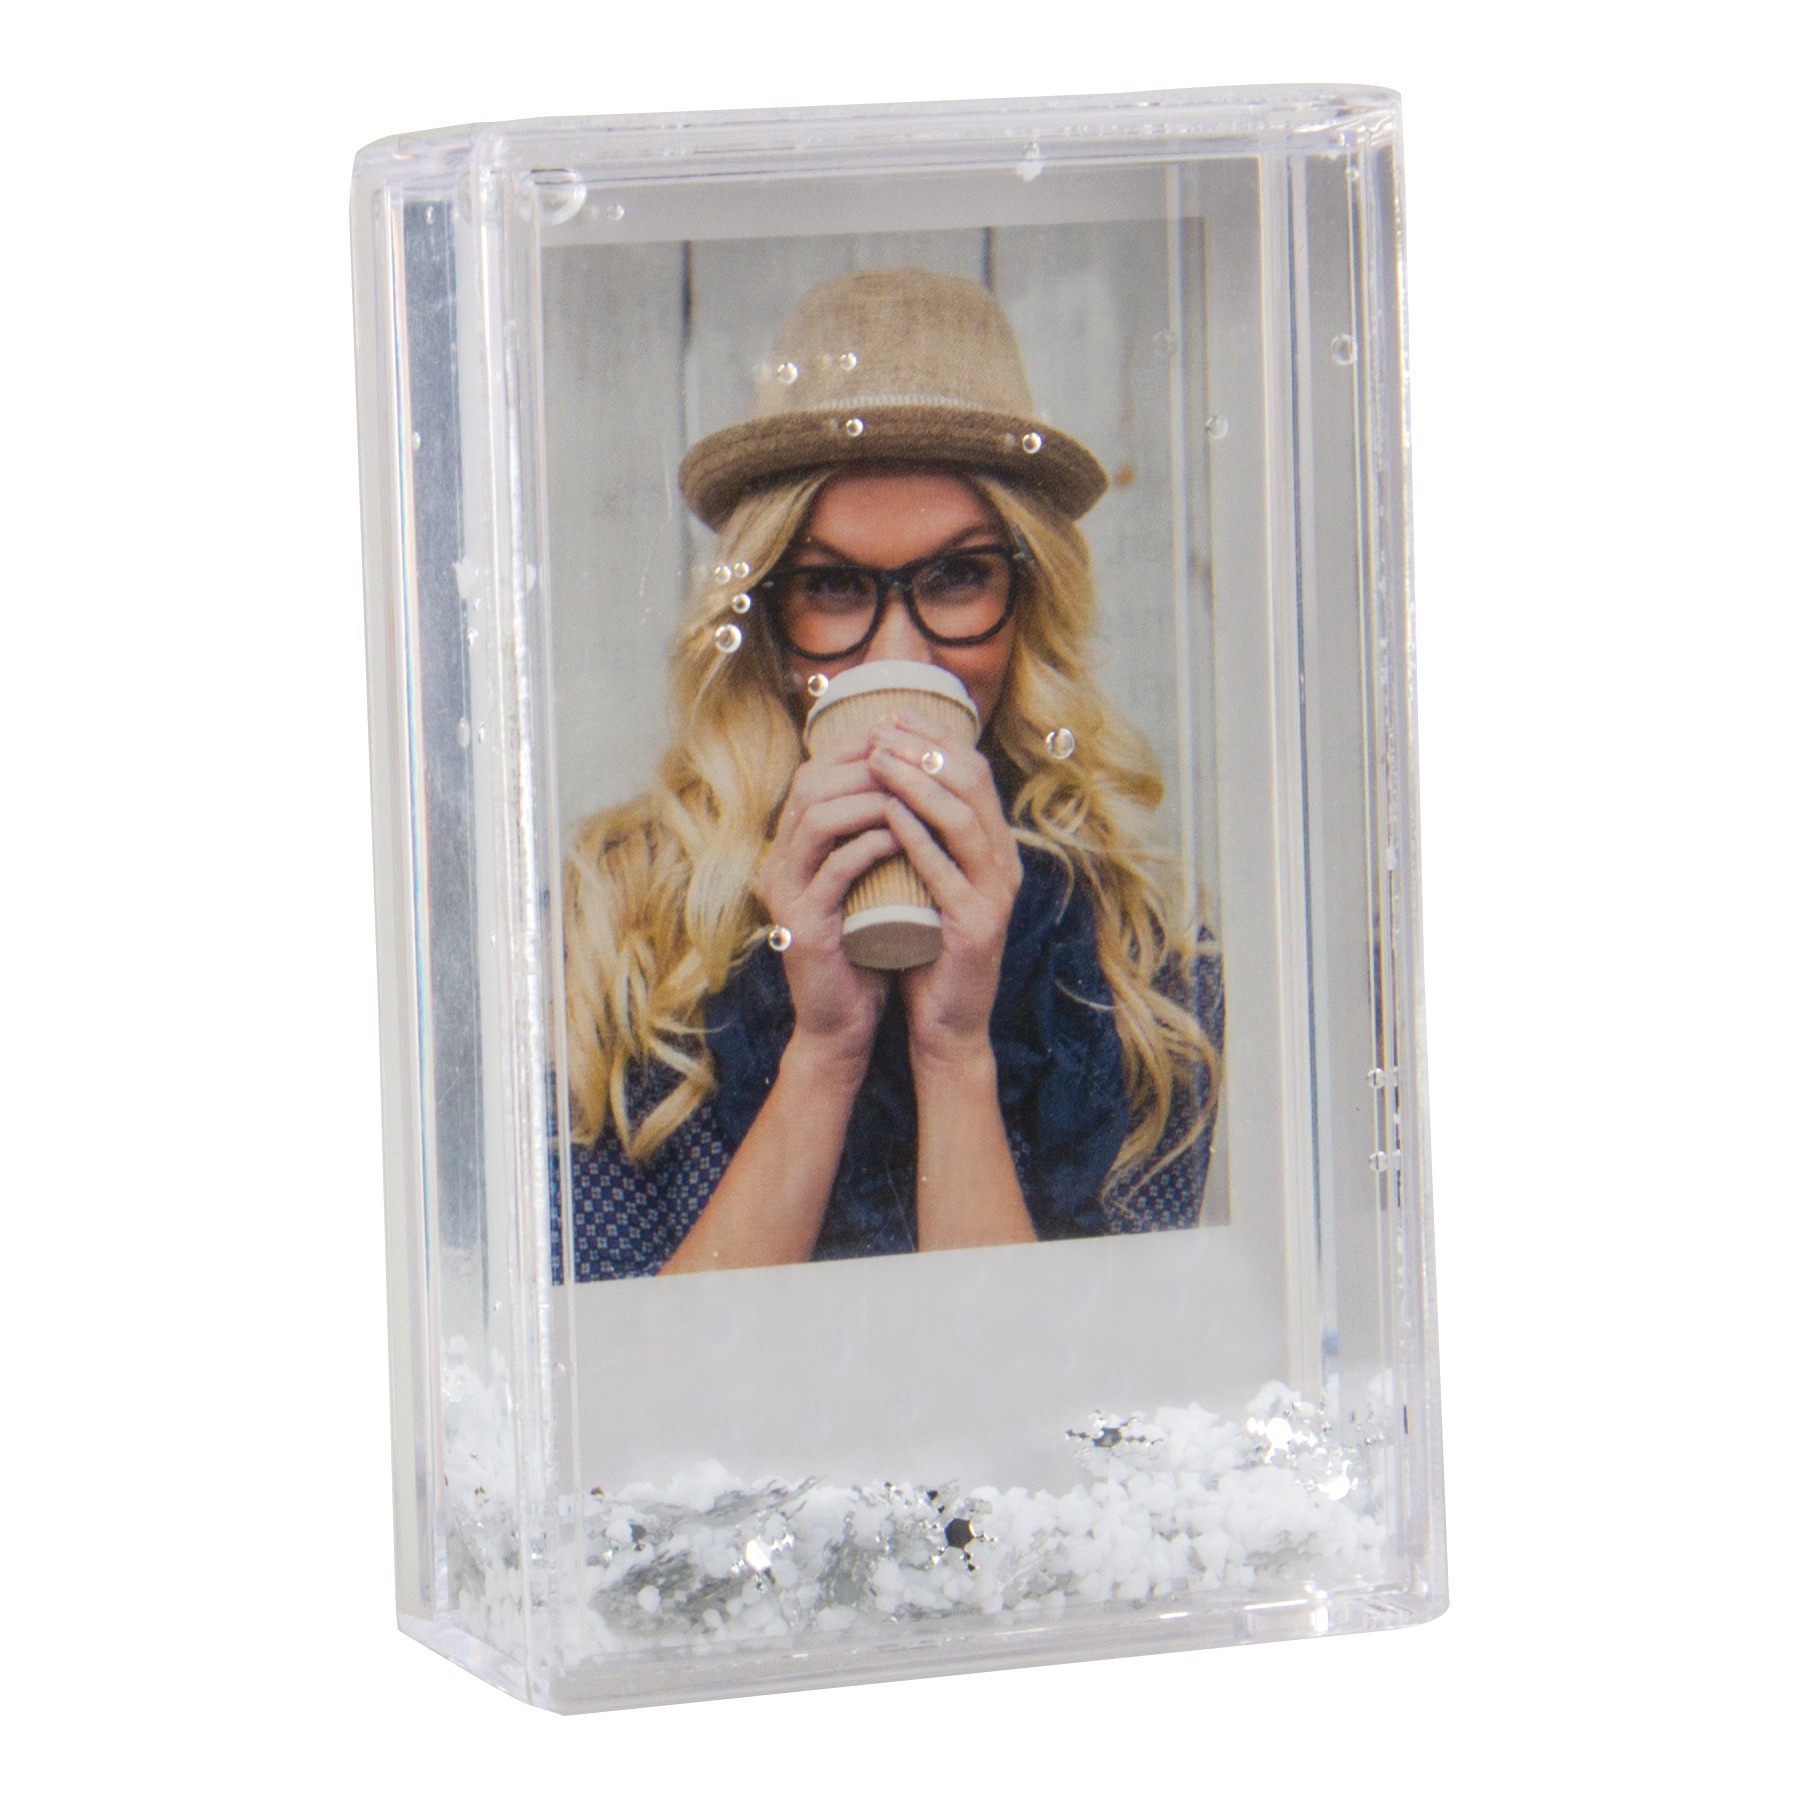 Wholesale Instax Picture Frames with Snow for Fujifilm | Neil ...